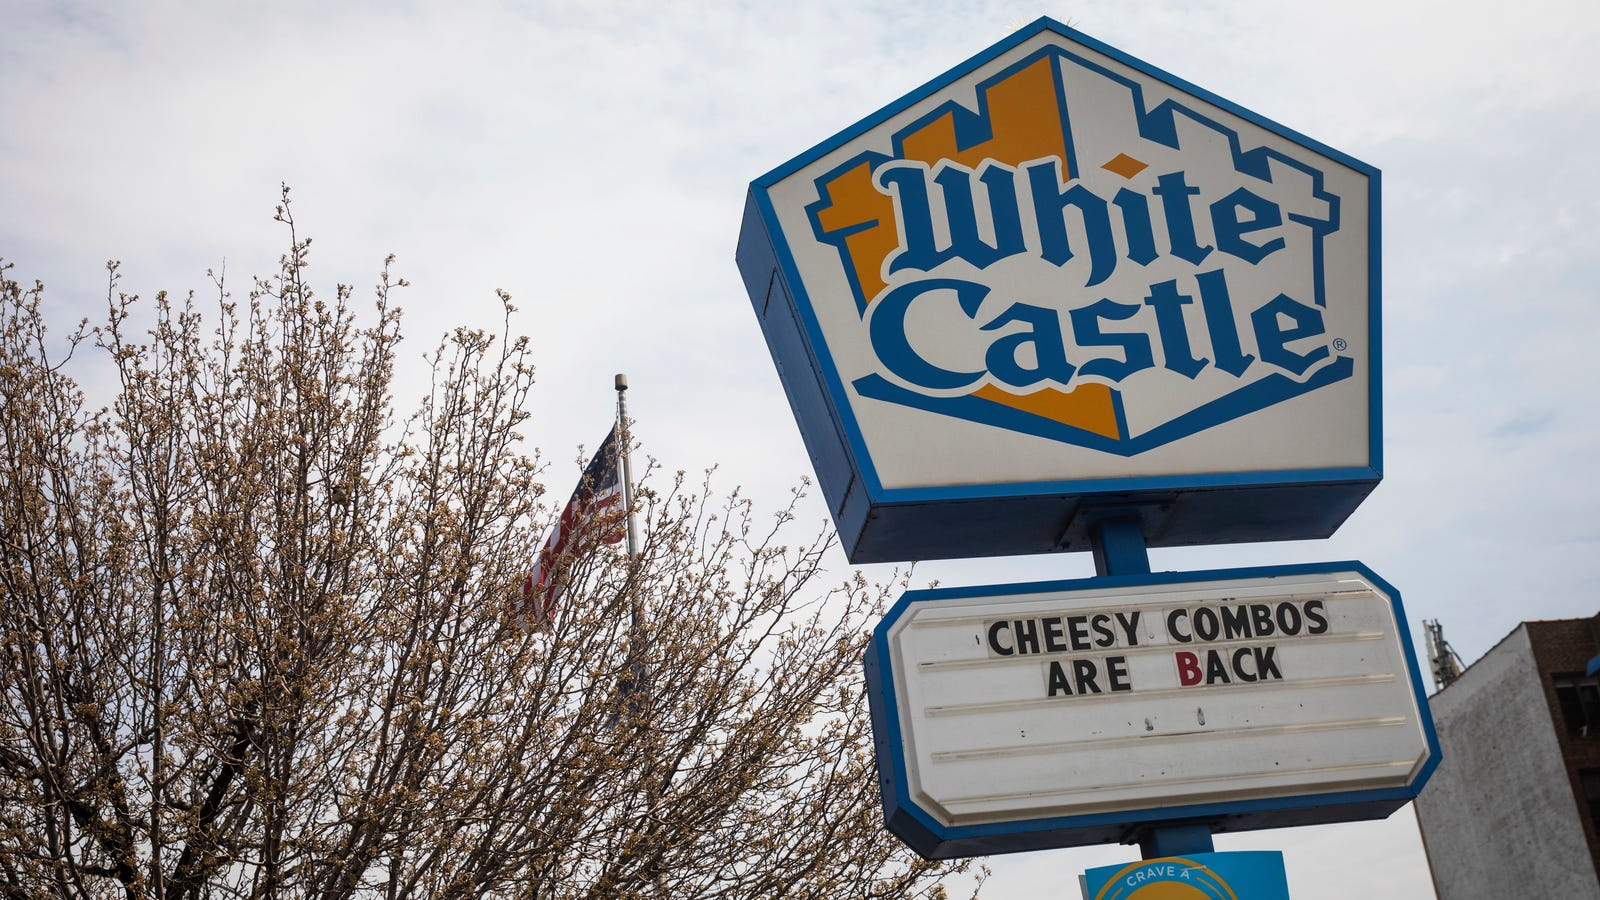 Get a Free Slider From White Castle Today